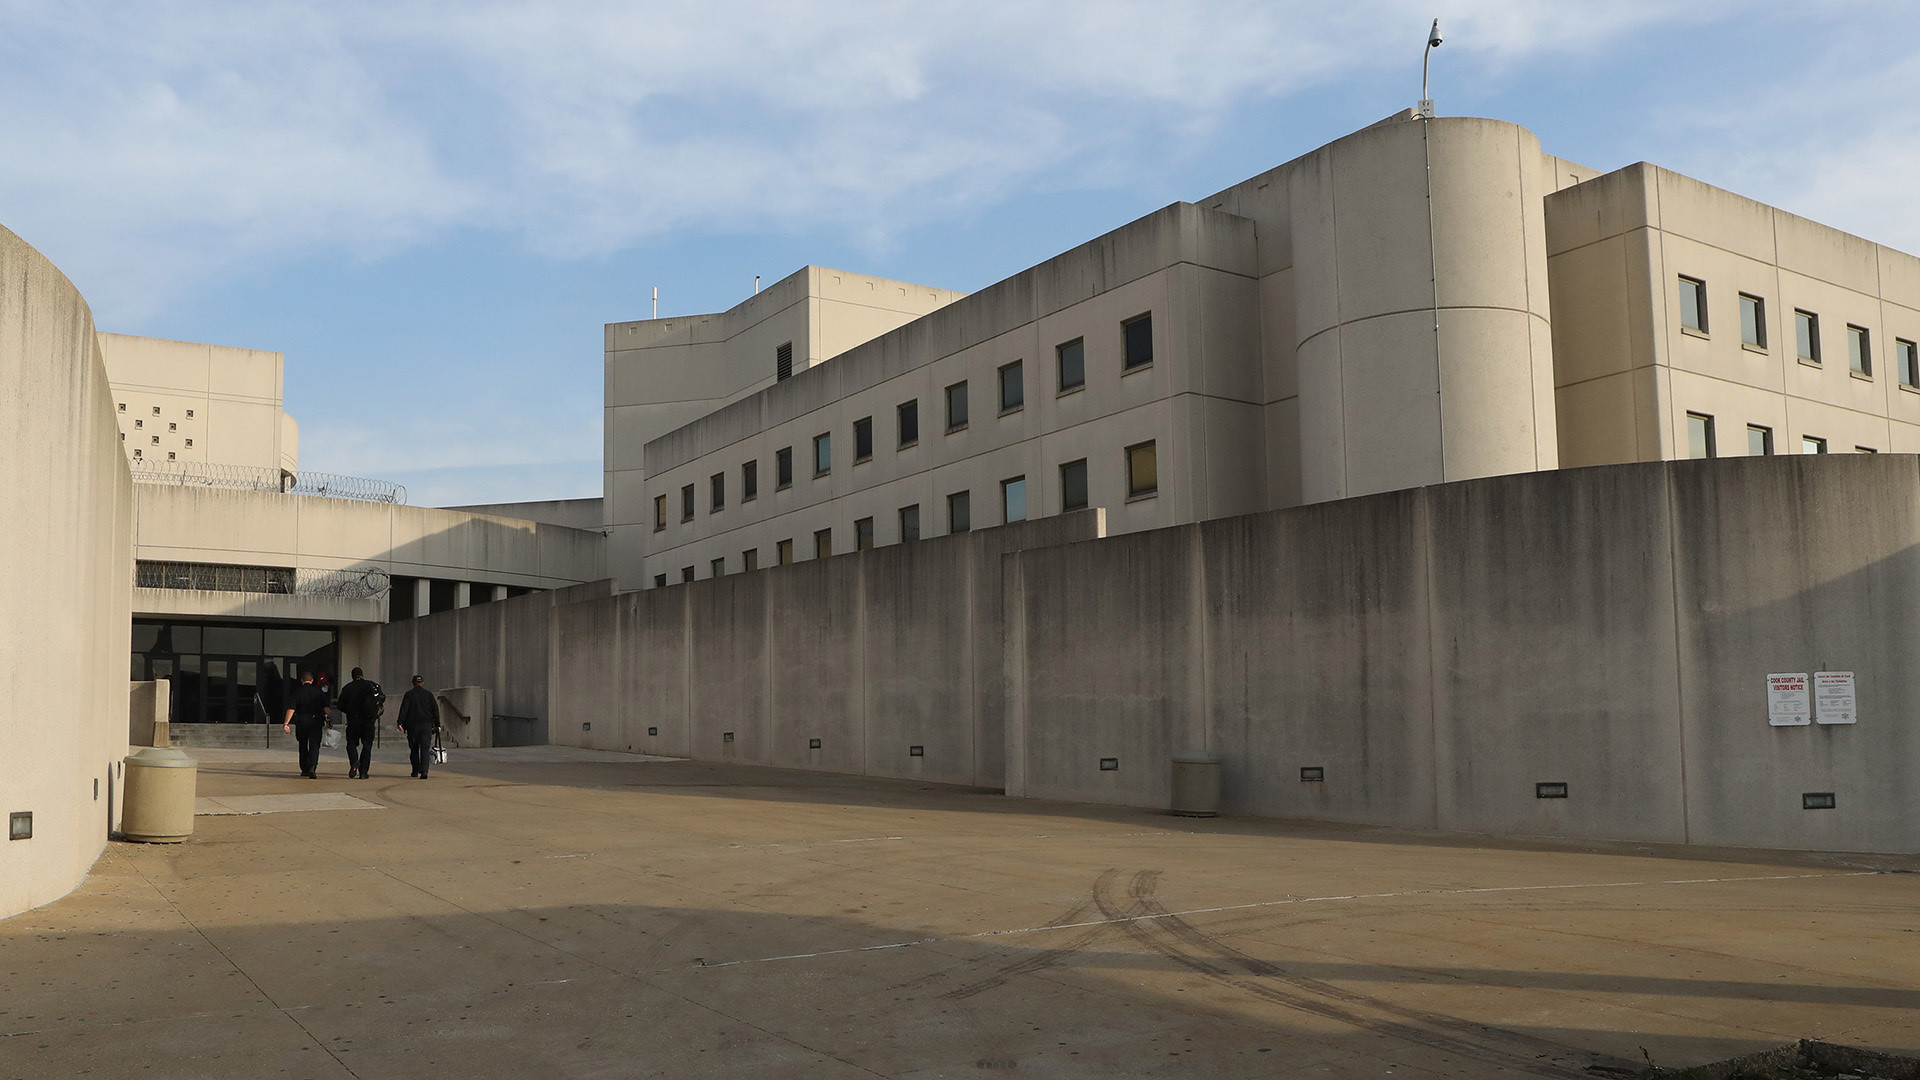 cook county jail exits federal oversight of more than 40 years